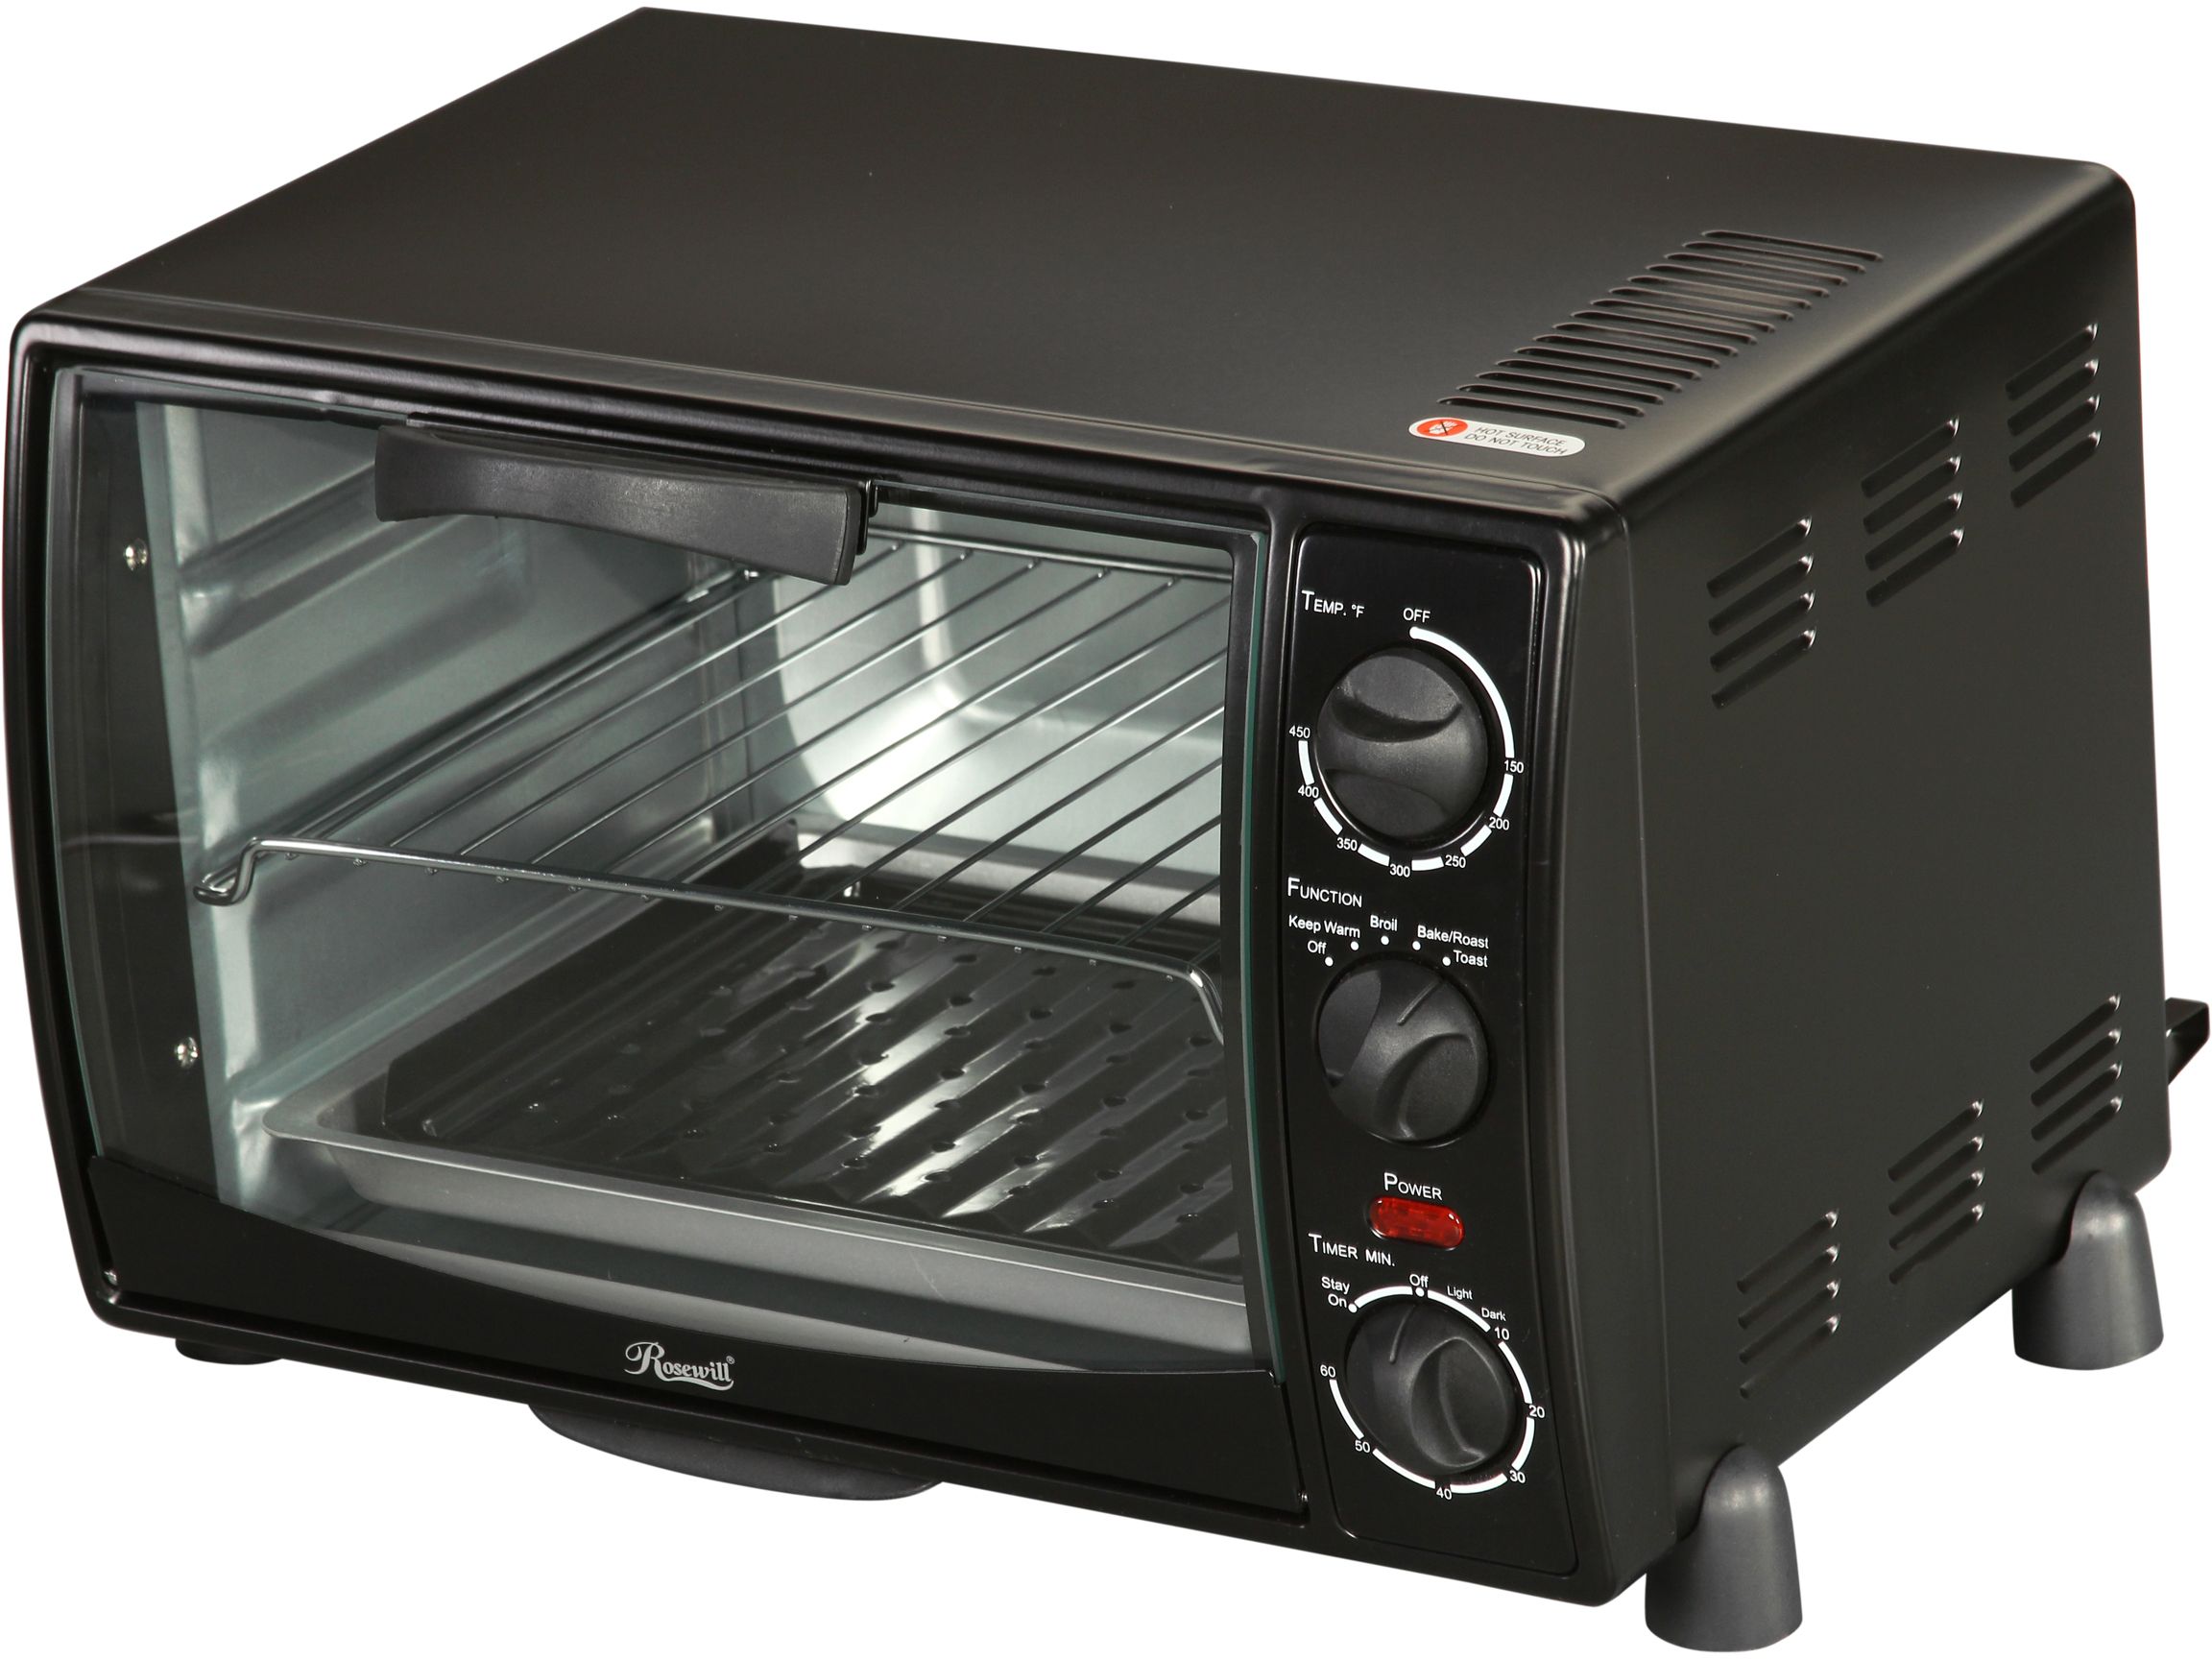 Rosewill Rosewill RHTO-13001 6 Slice Black Toaster Oven Broiler with Drip Pan